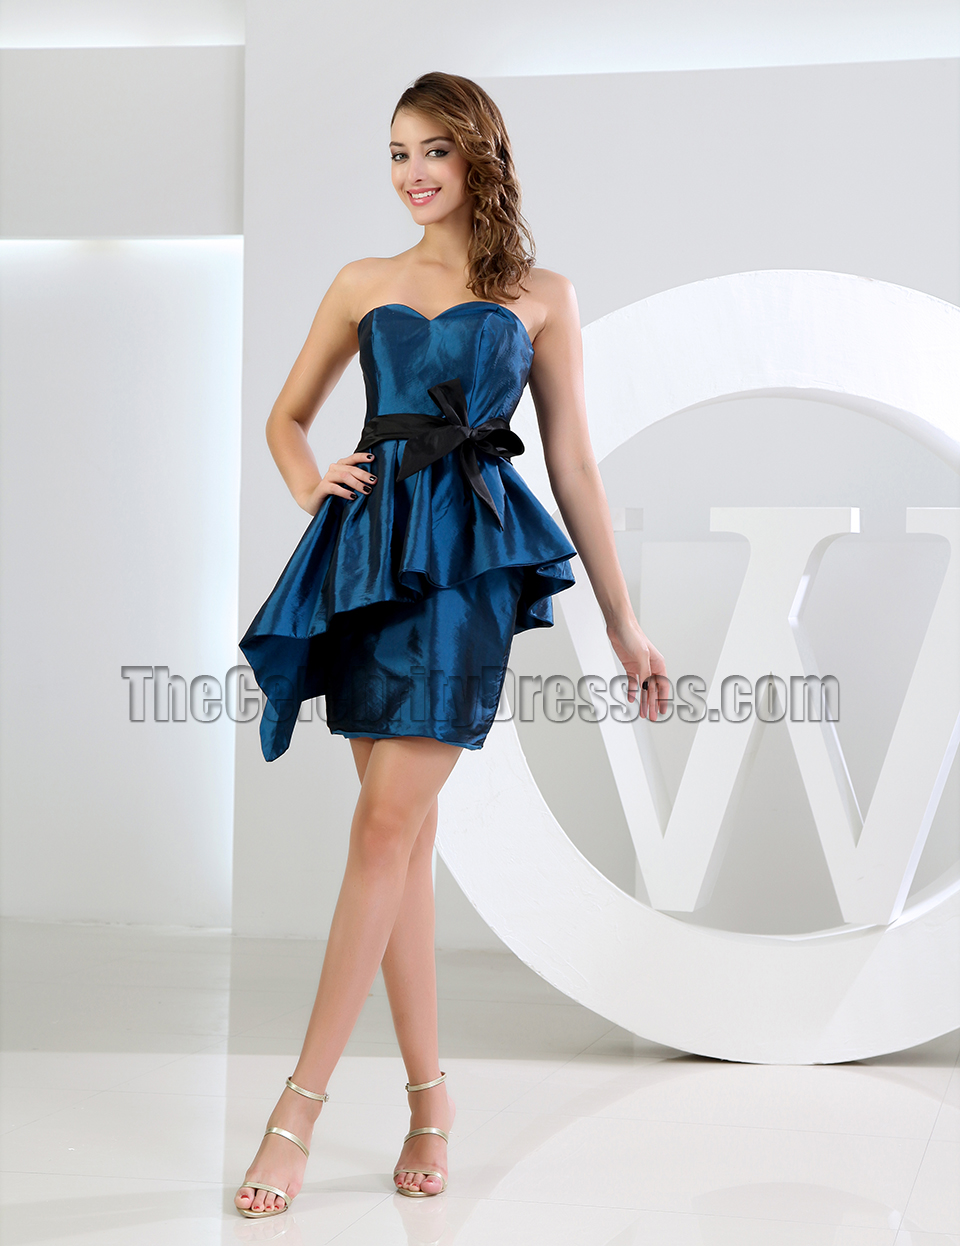 06eb68cc51 New Style Short Mini Strapless Cocktail Dress Party Dresses -  TheCelebrityDresses